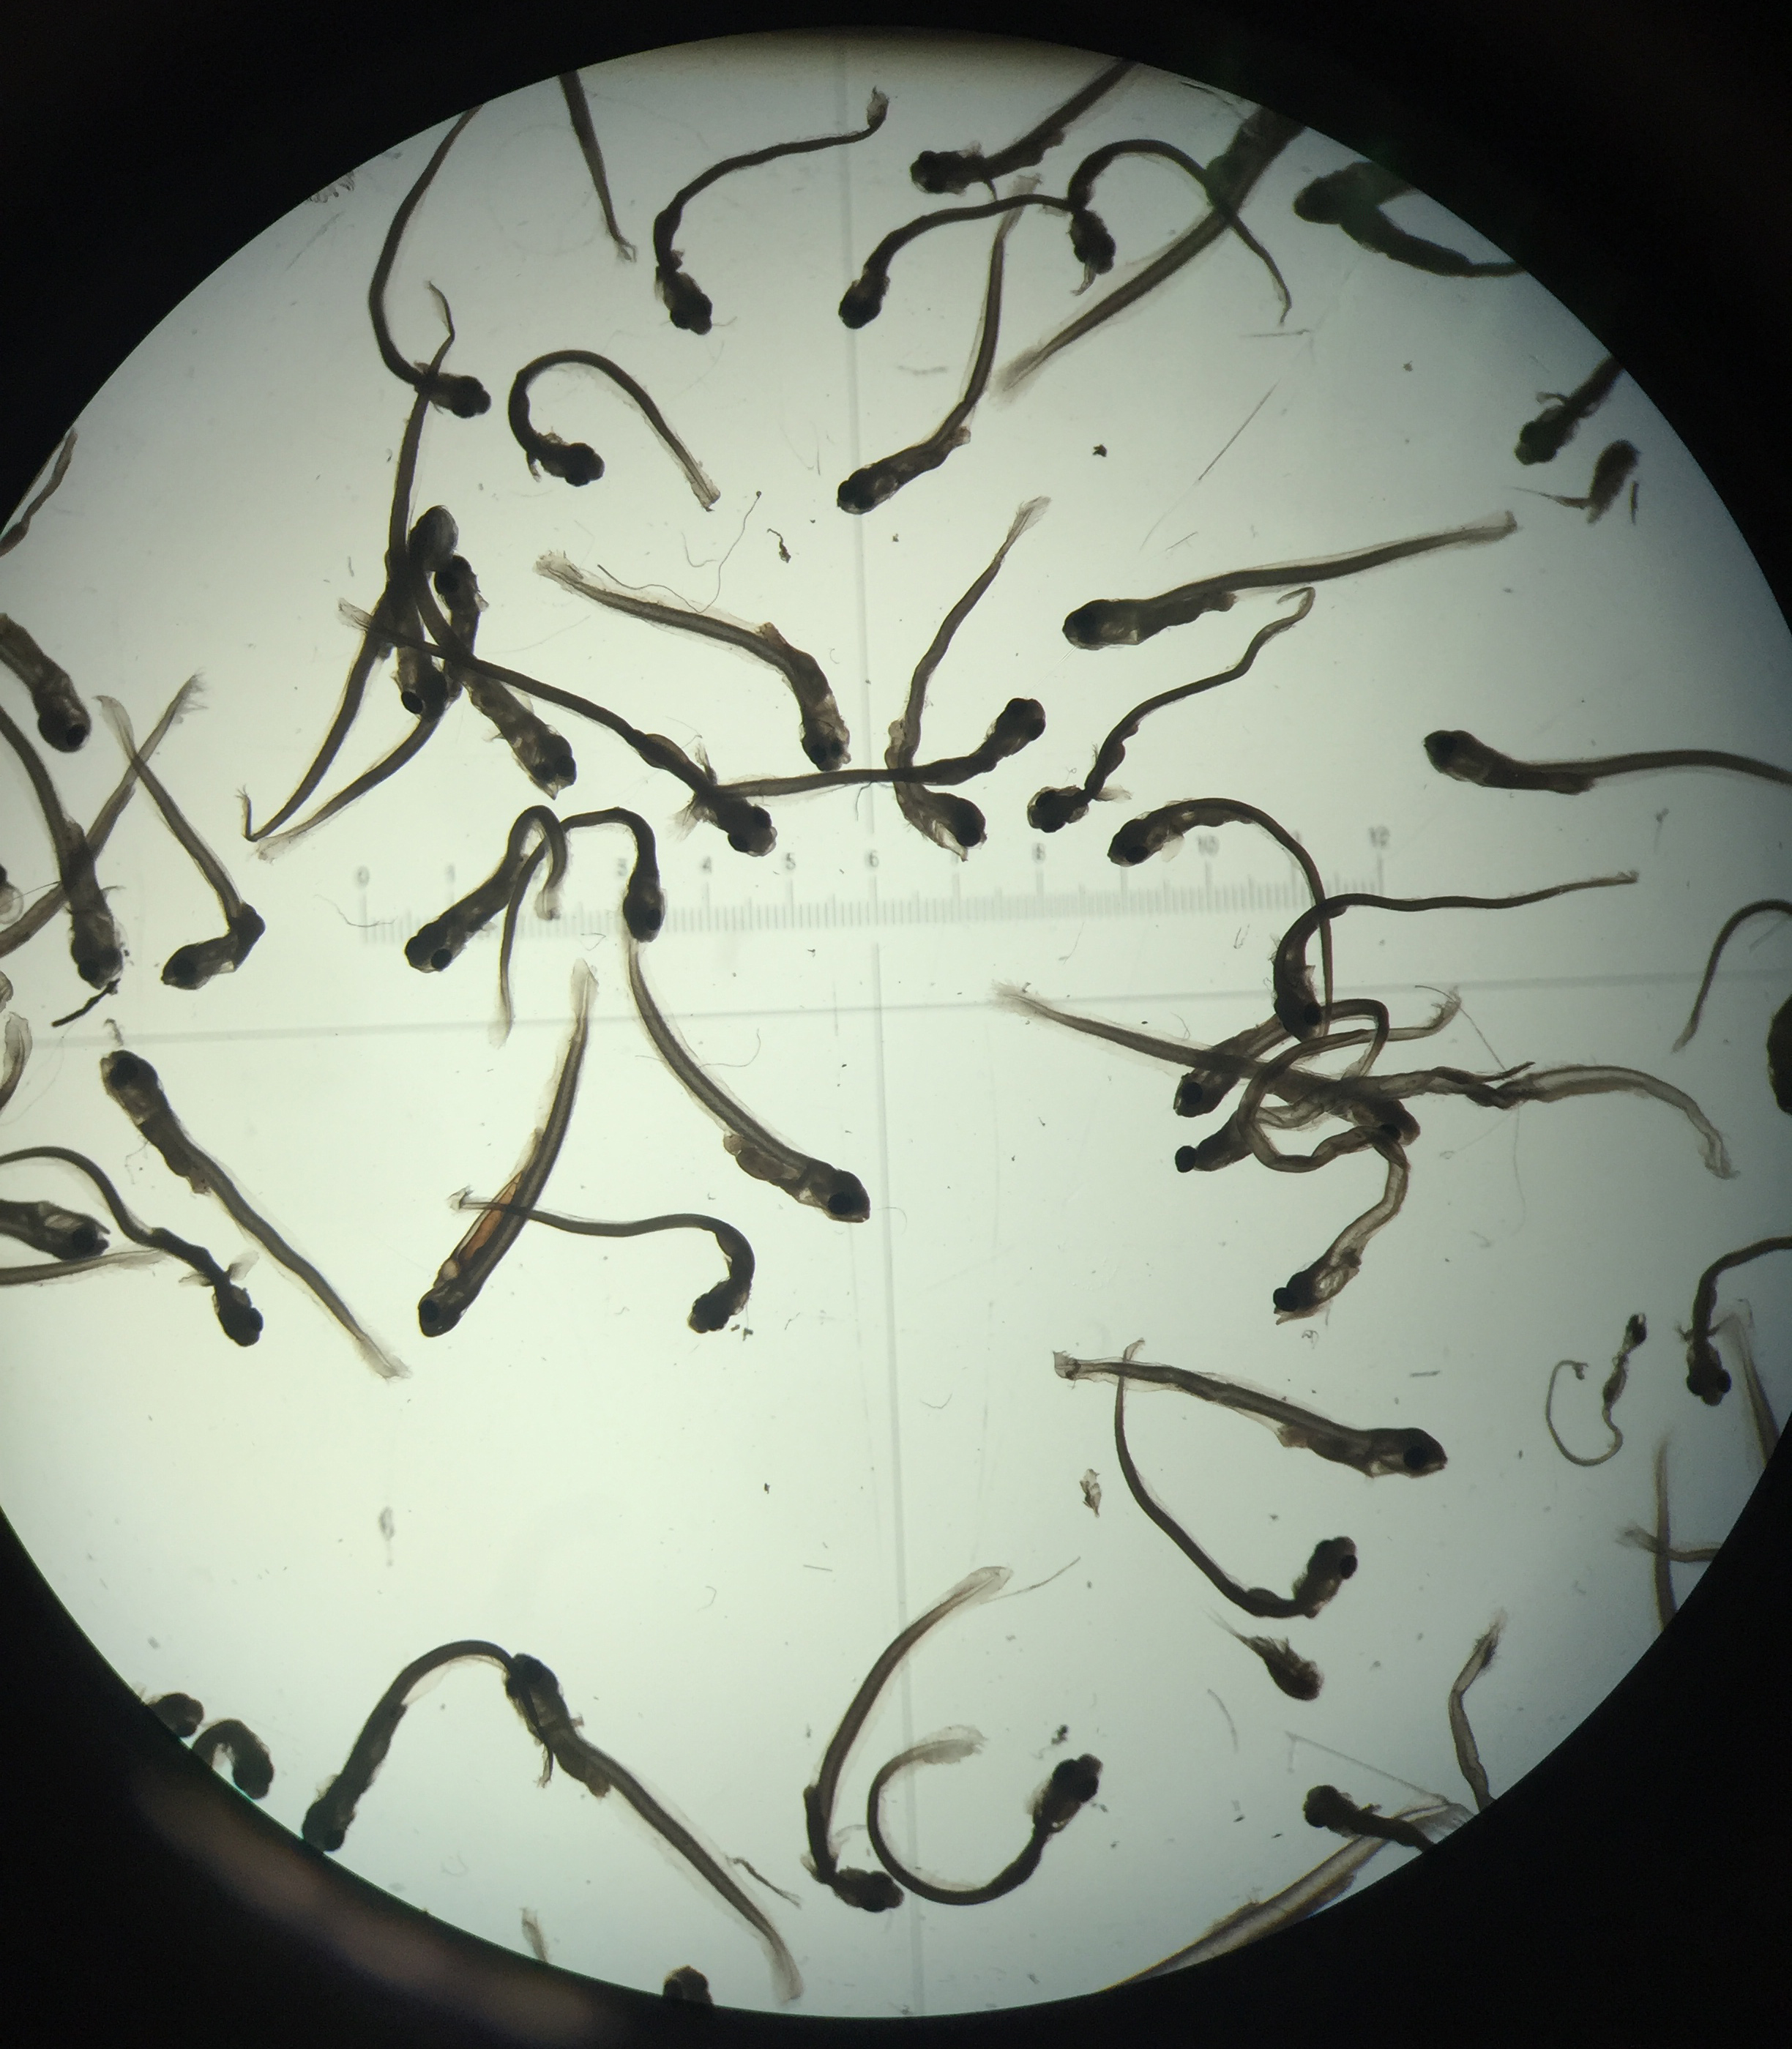 Microscope image of mixed larval fishes from one sample.